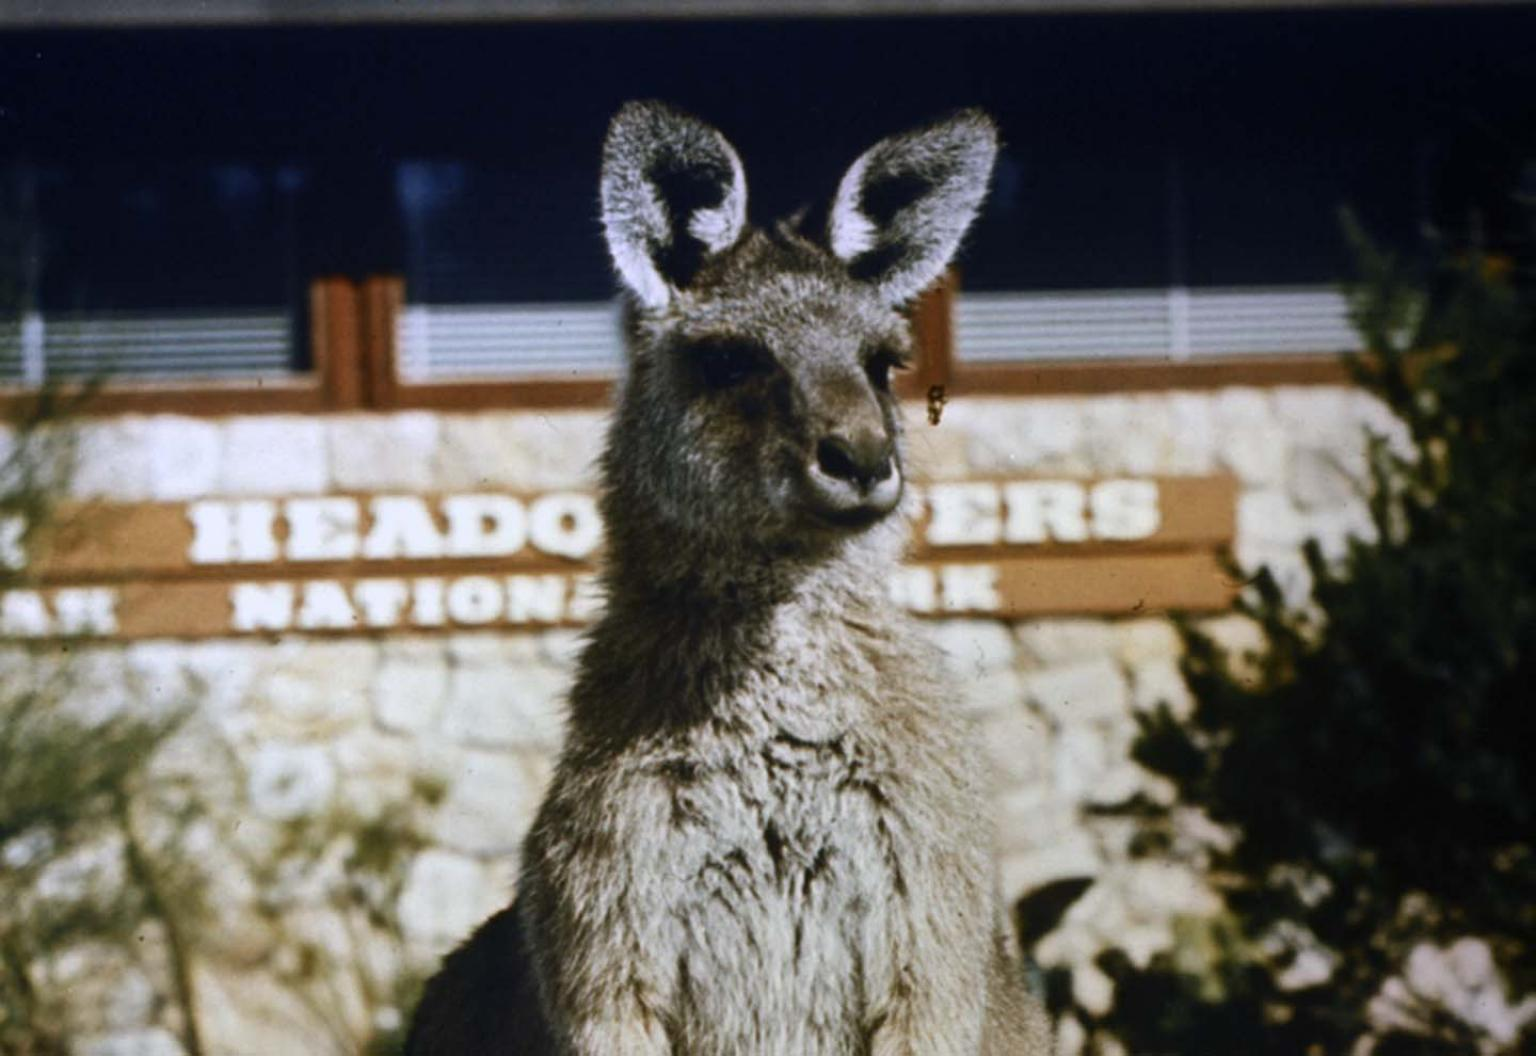 A kangaroo with ears cocked and a National Park Headquarters sign in the background